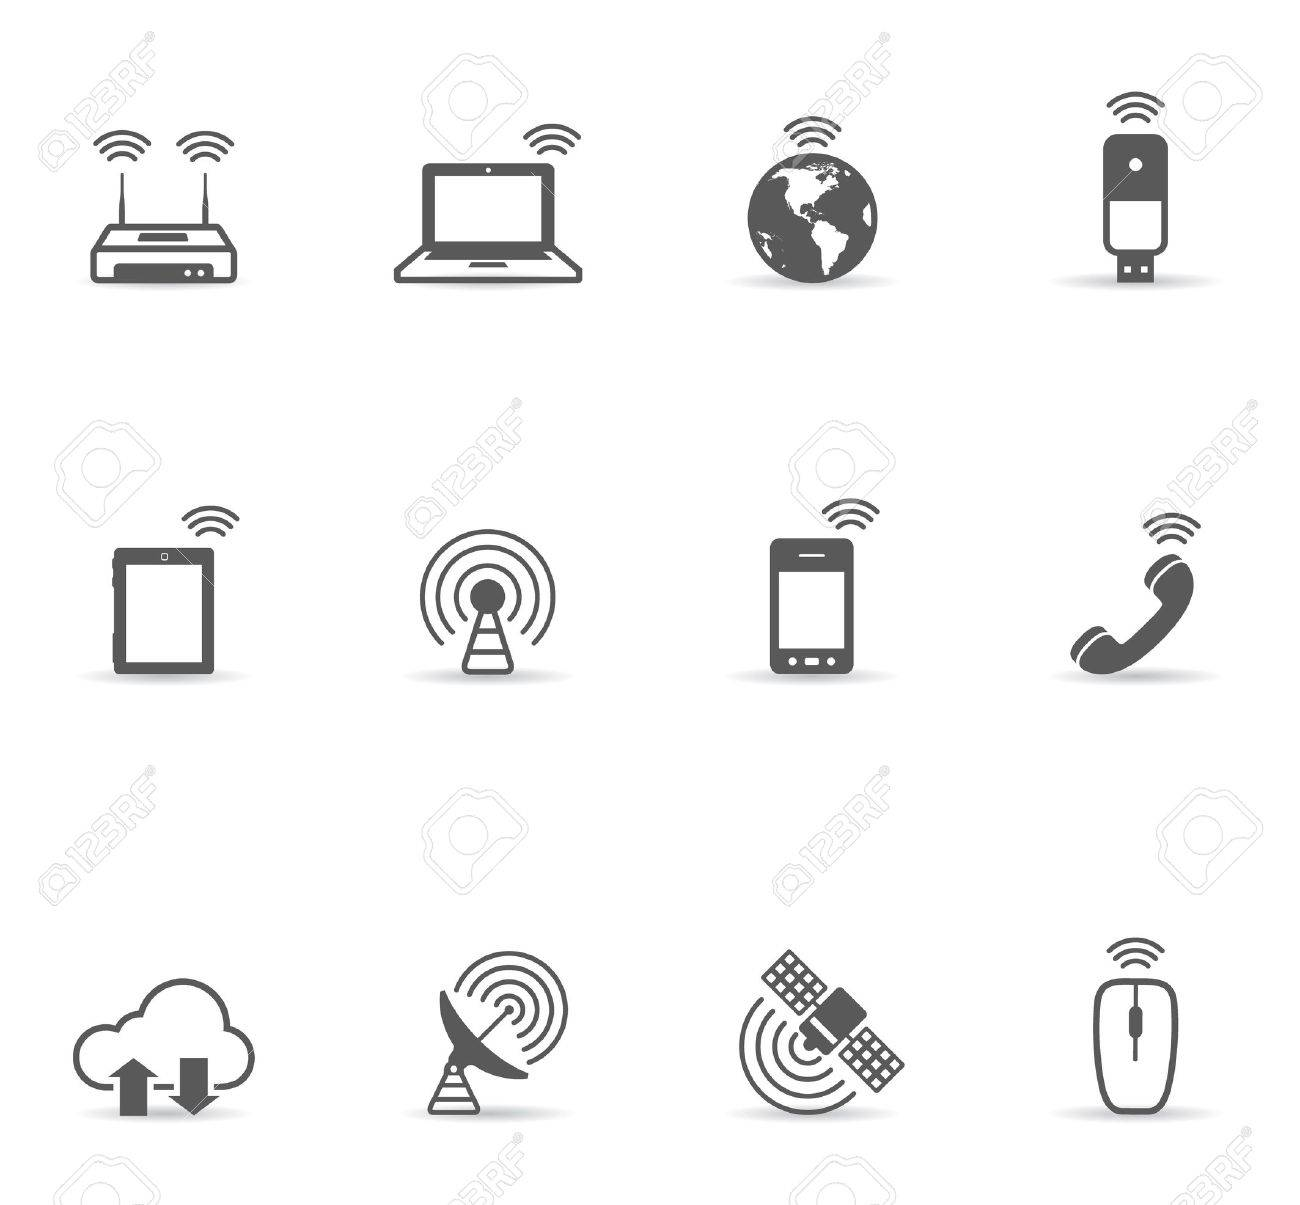 Wireless world icon set in single color. EPS 10 with transparent shadow placed on separate layer. No spot color used. AI, PDF and transparent PNG of each icon included. Stock Vector - 11850676